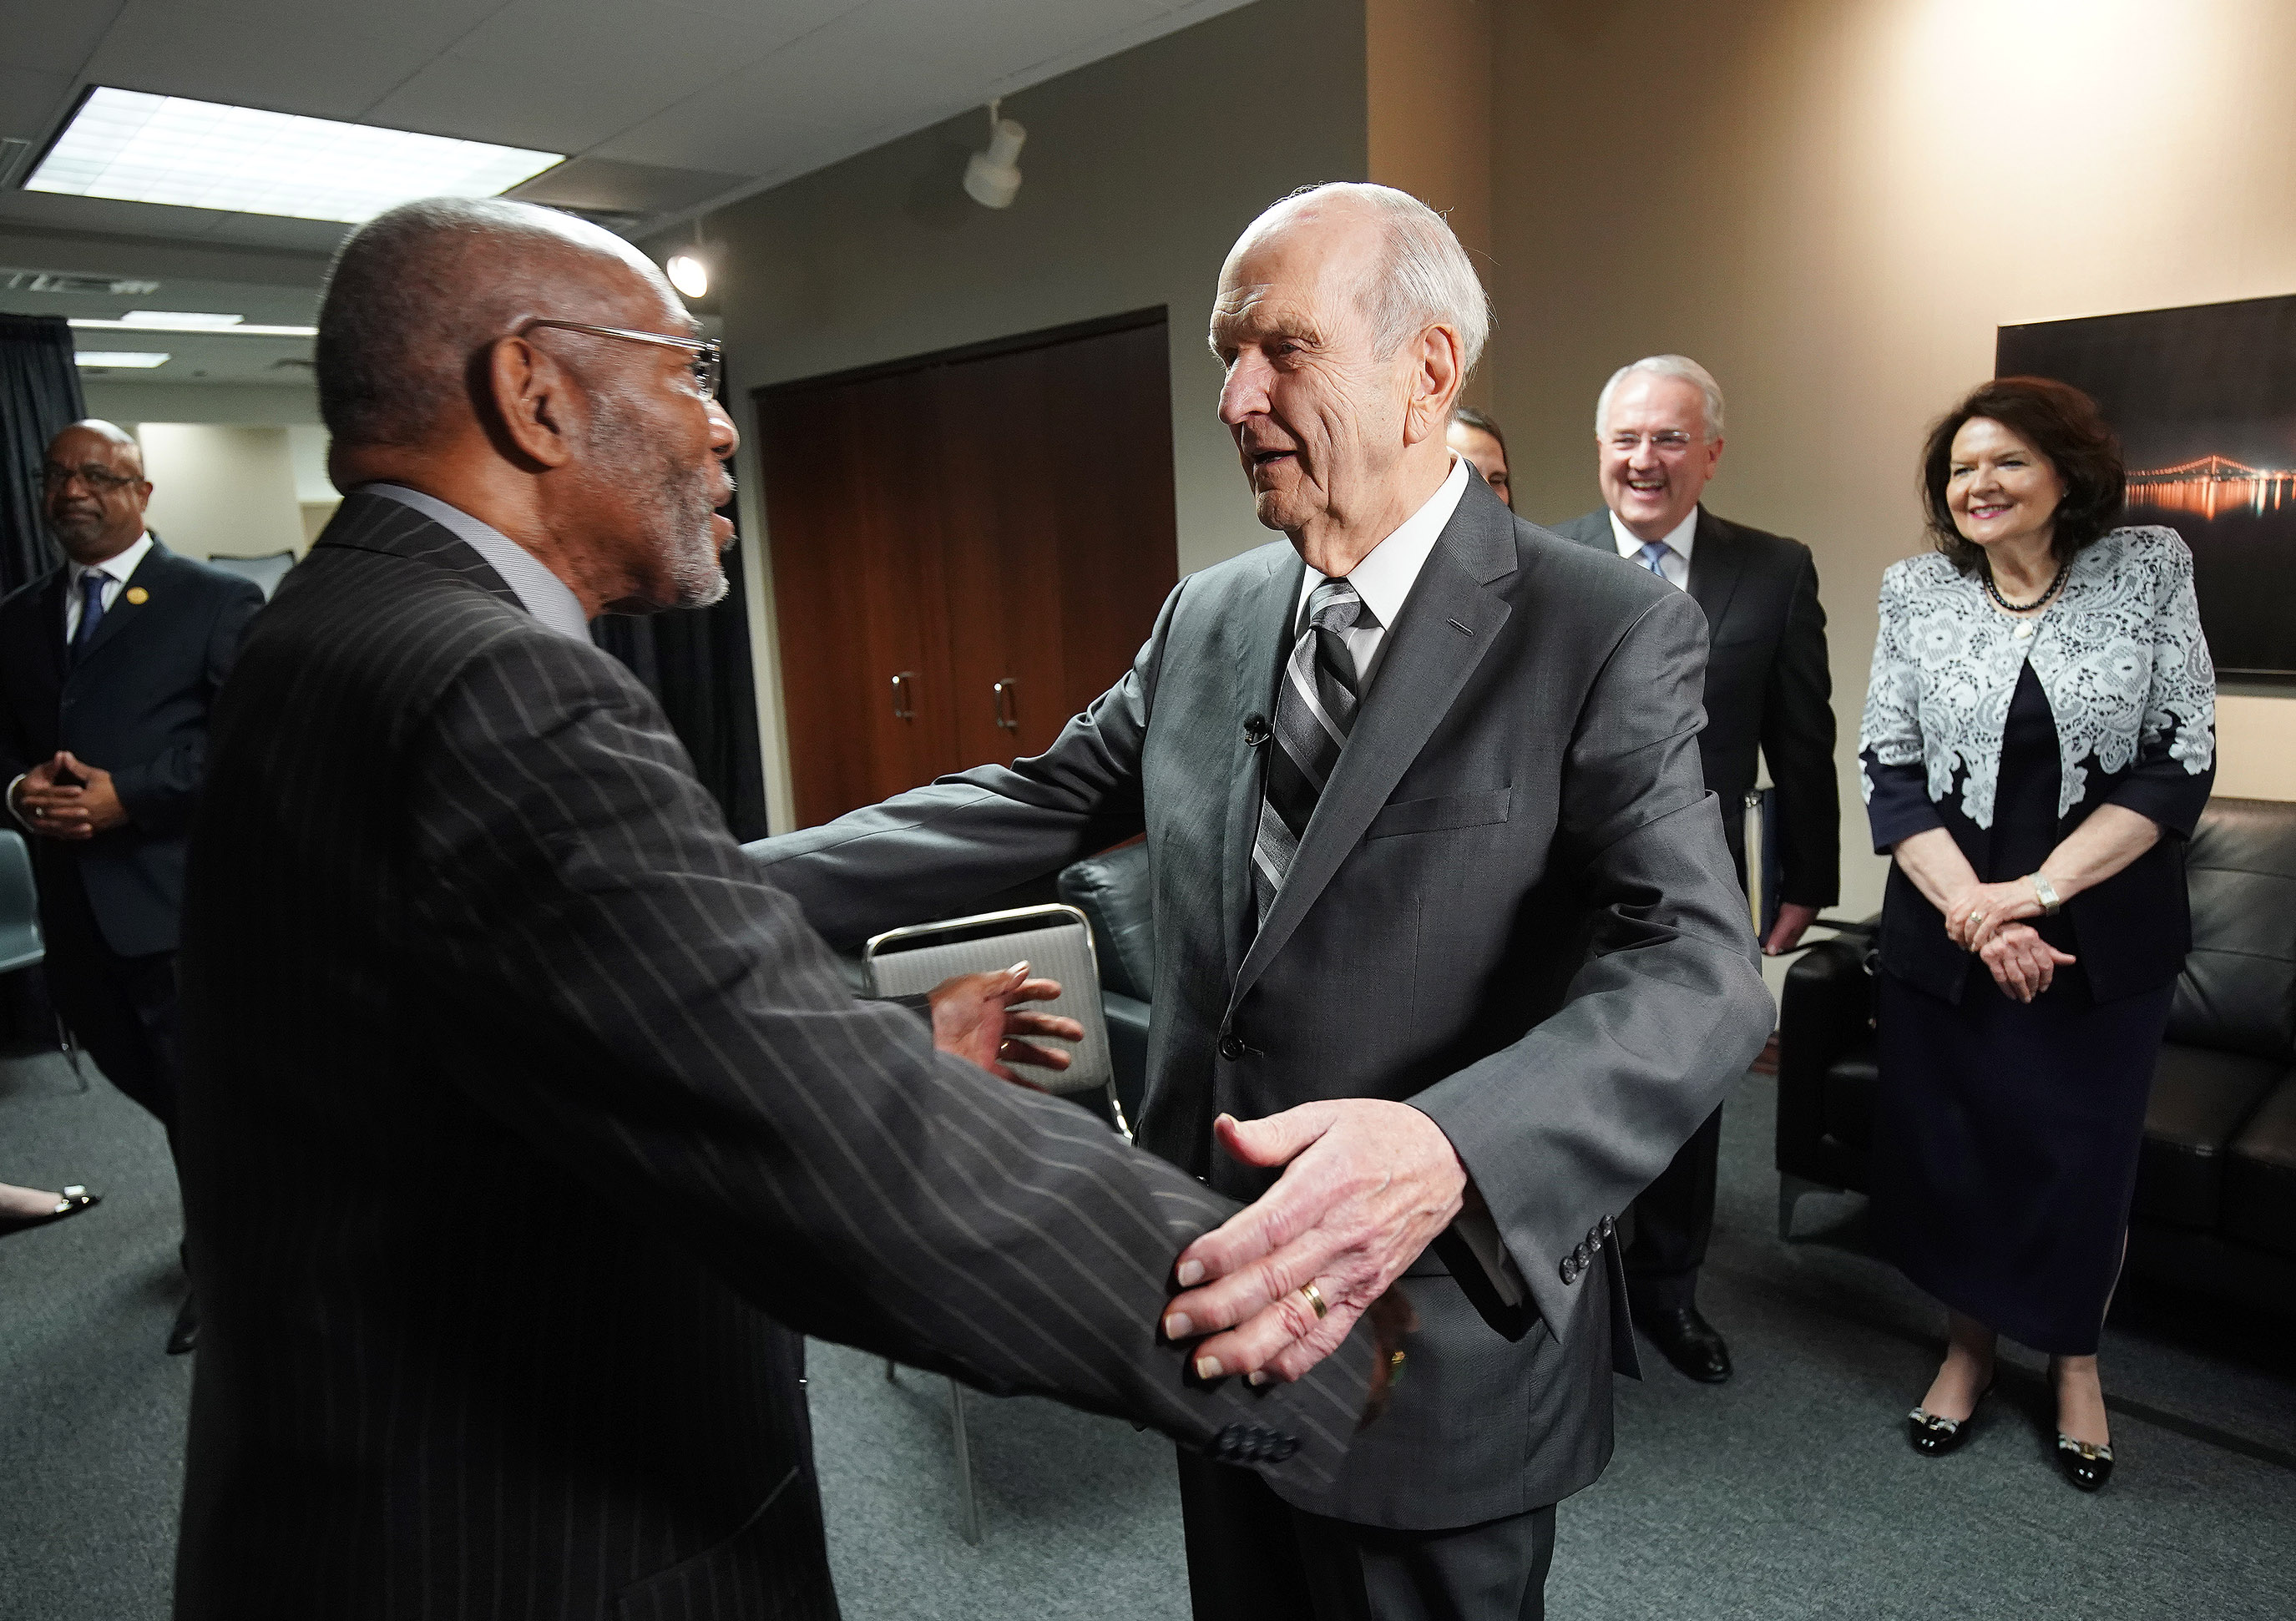 President Russell M. Nelson of The Church of Jesus Christ of Latter-day Saints embraces the Rev. Amos C. Brown at the 110th annual national convention for the National Association for the Advancement of Colored People in Detroit on Sunday, July 21, 2019.